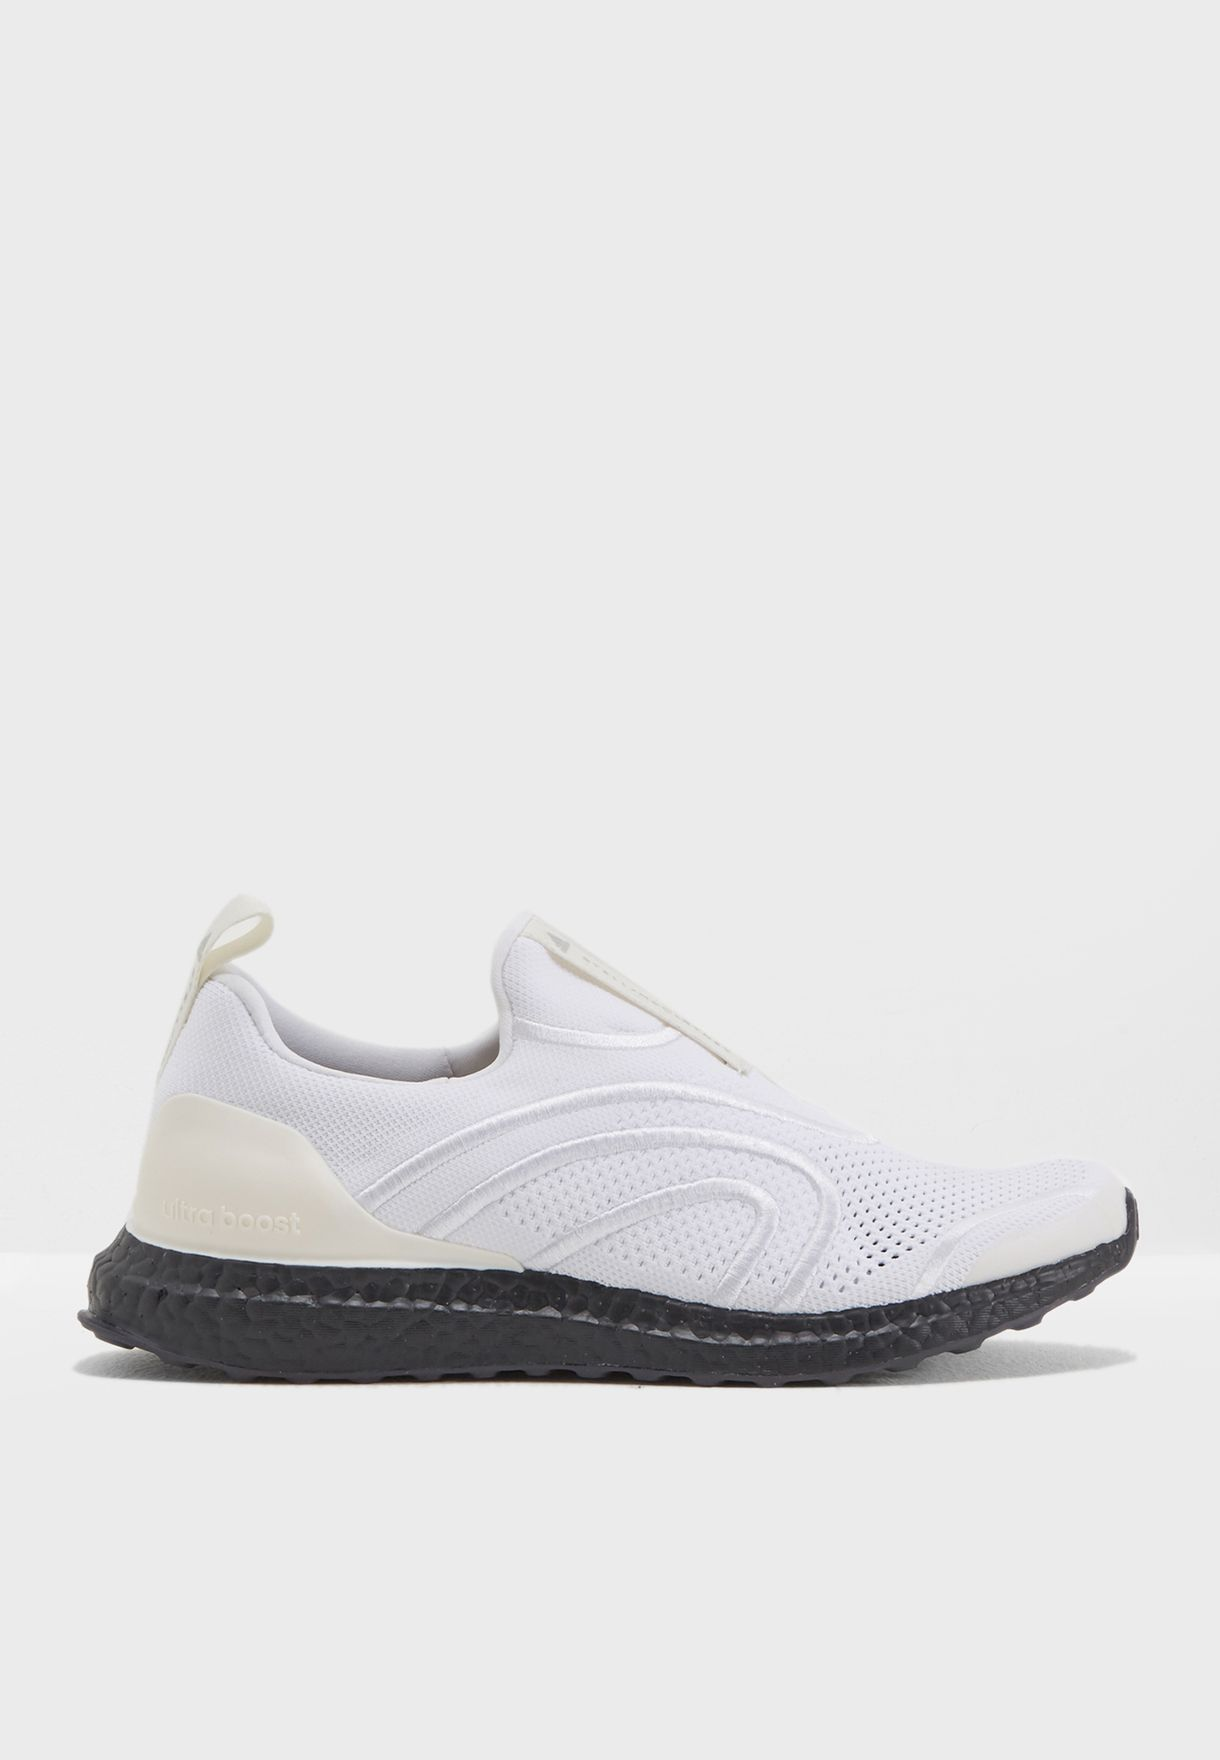 24b662016 Shop adidas by Stella McCartney white Ultraboost Uncaged CM7886 for ...